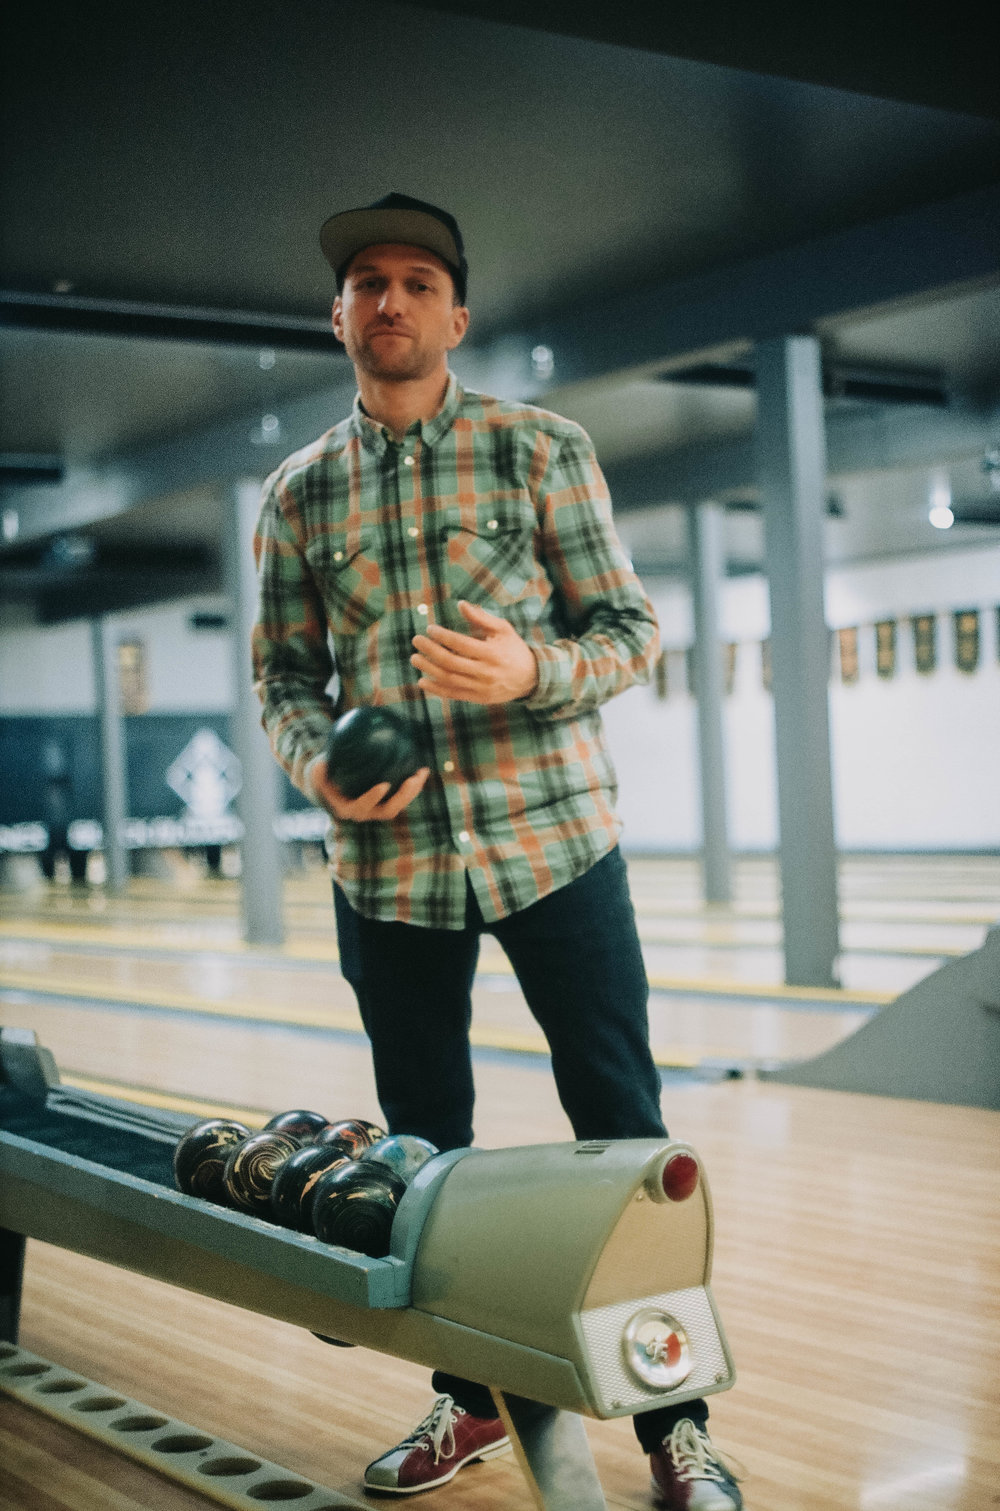 Erik takes bowling very seriously.